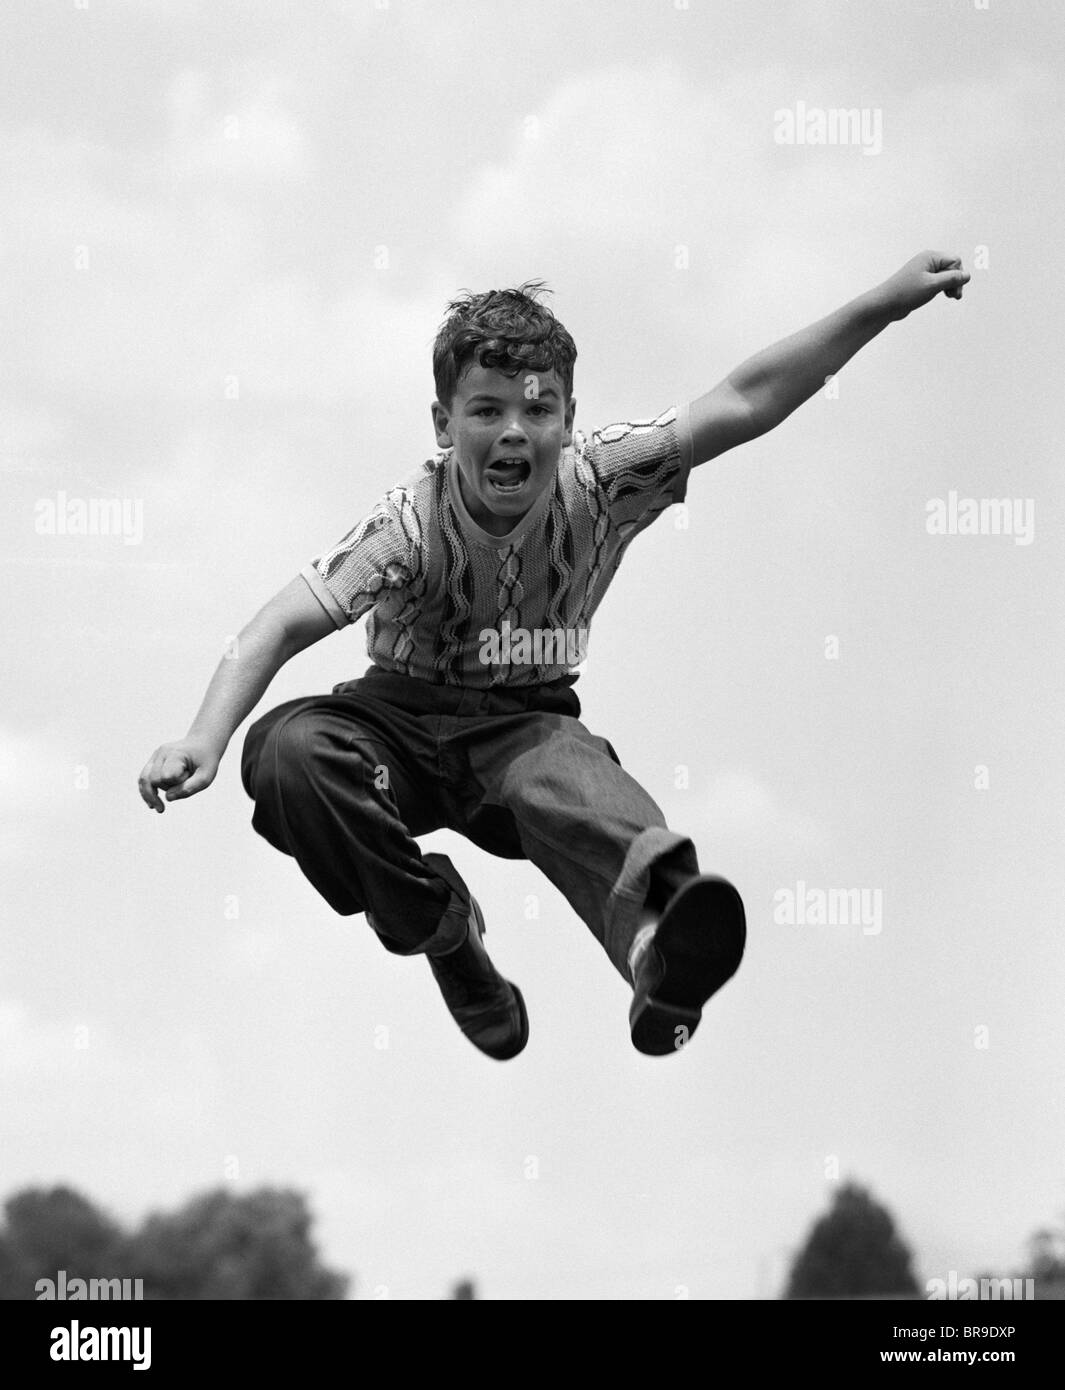 950s BOY JUMPING UP - Stock Image